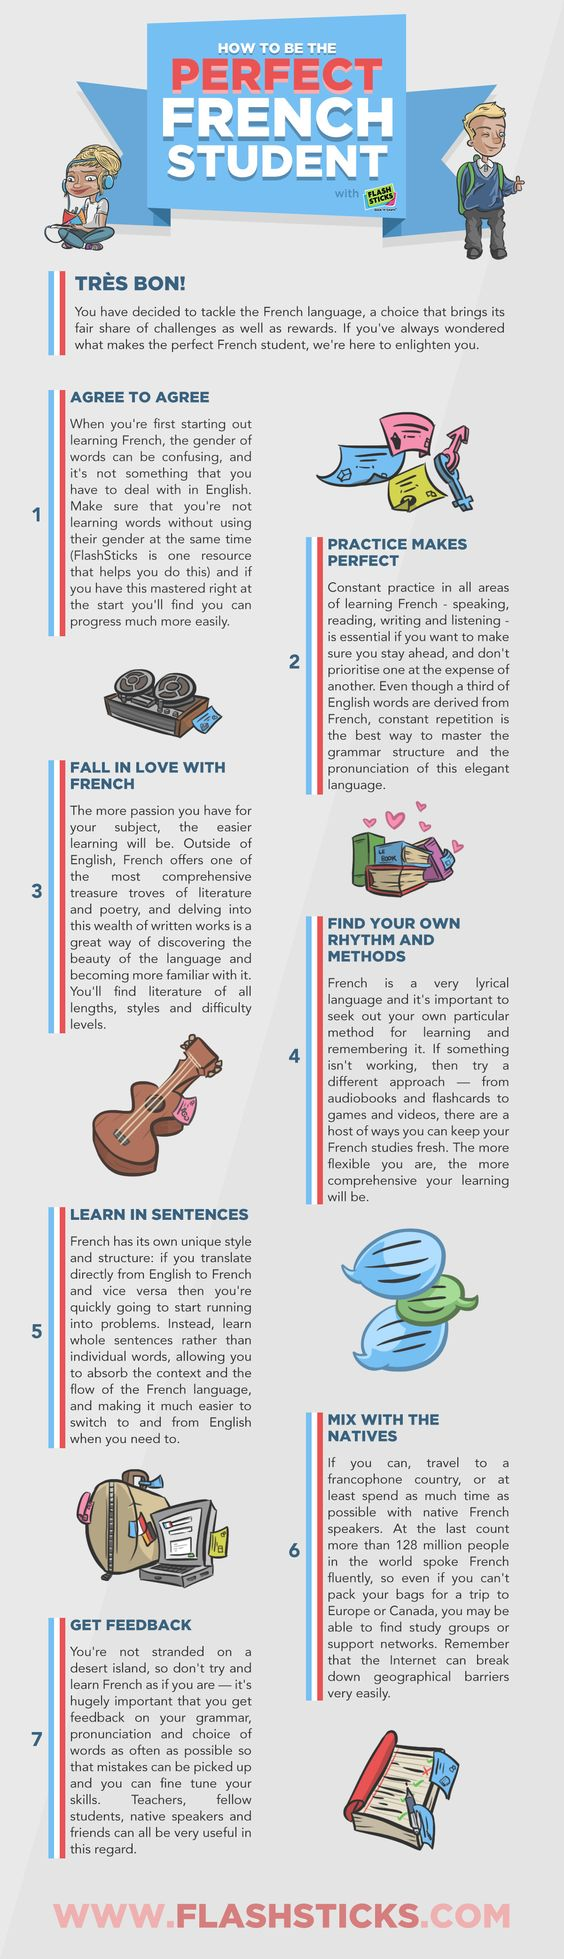 Learning French is far from easy. And that's why we've got a nice little infographic to help you on your way. Enjoy.